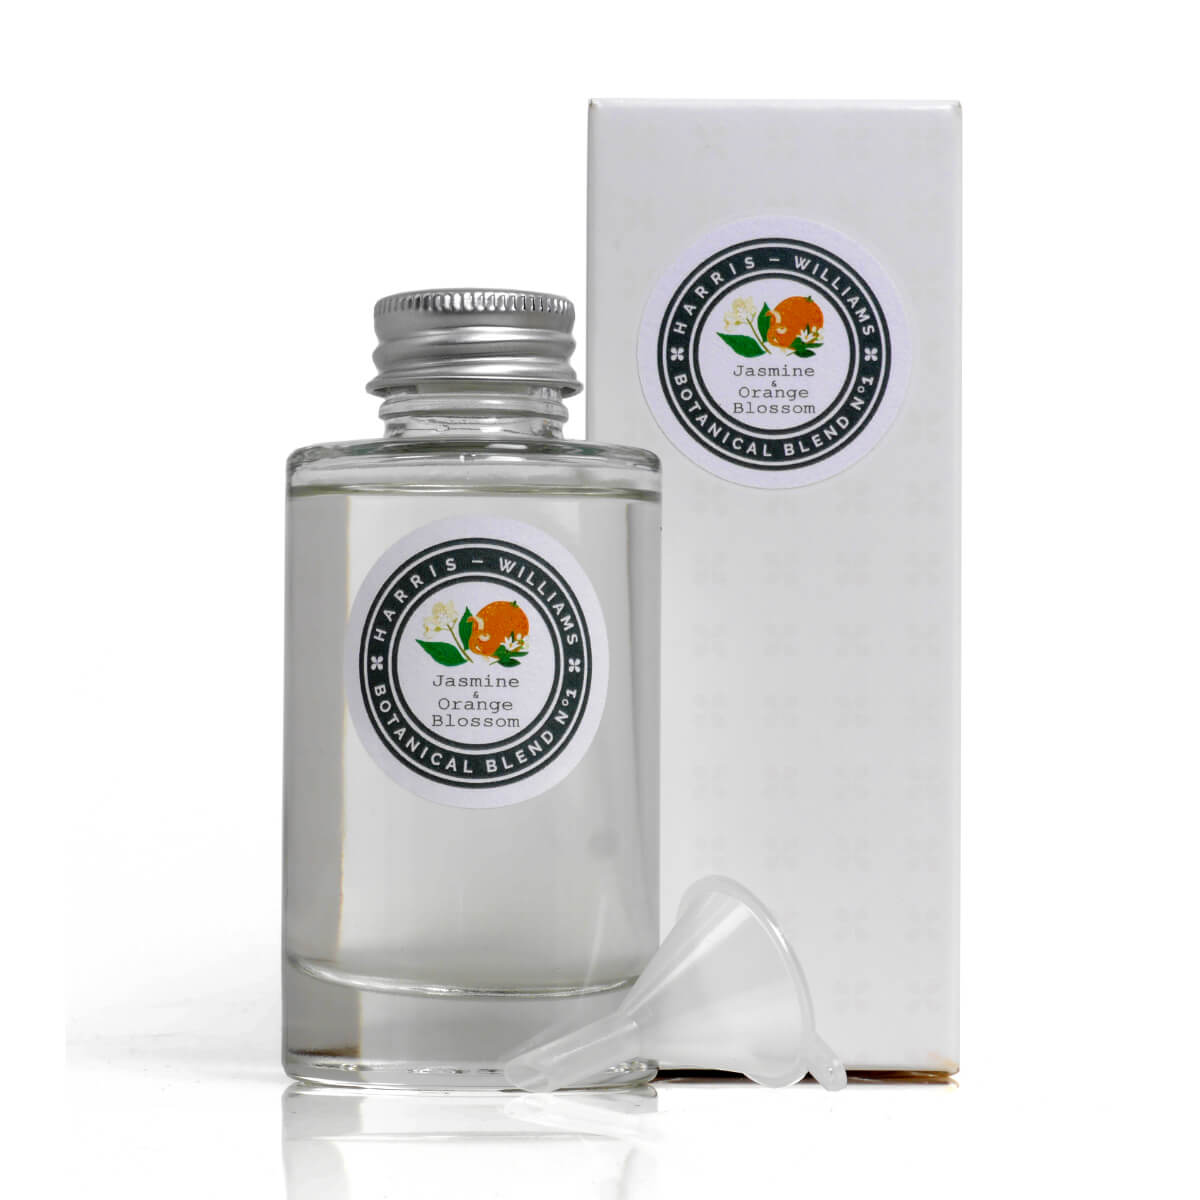 Botanical Blend No 1 Jasmine & Orange Blossom Refill